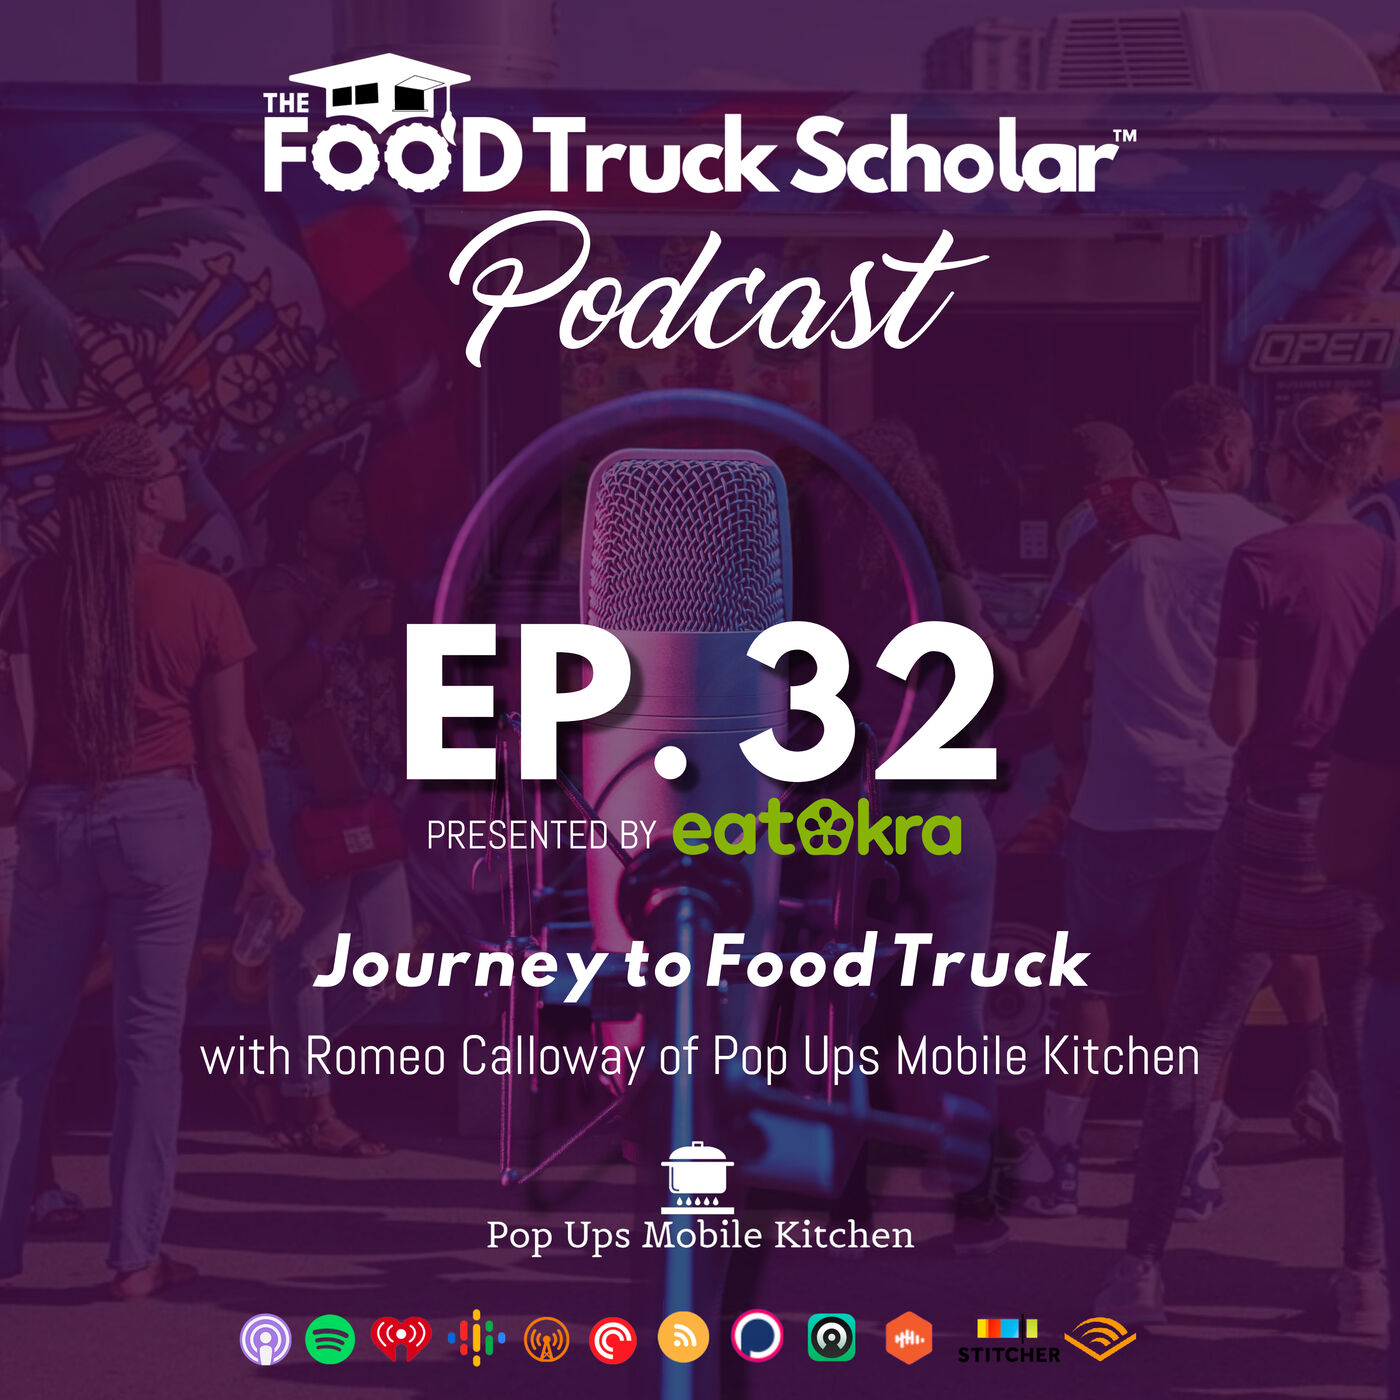 Journey to Food Truck w/ Romeo Calloway of Pop Ups Mobile Kitchen